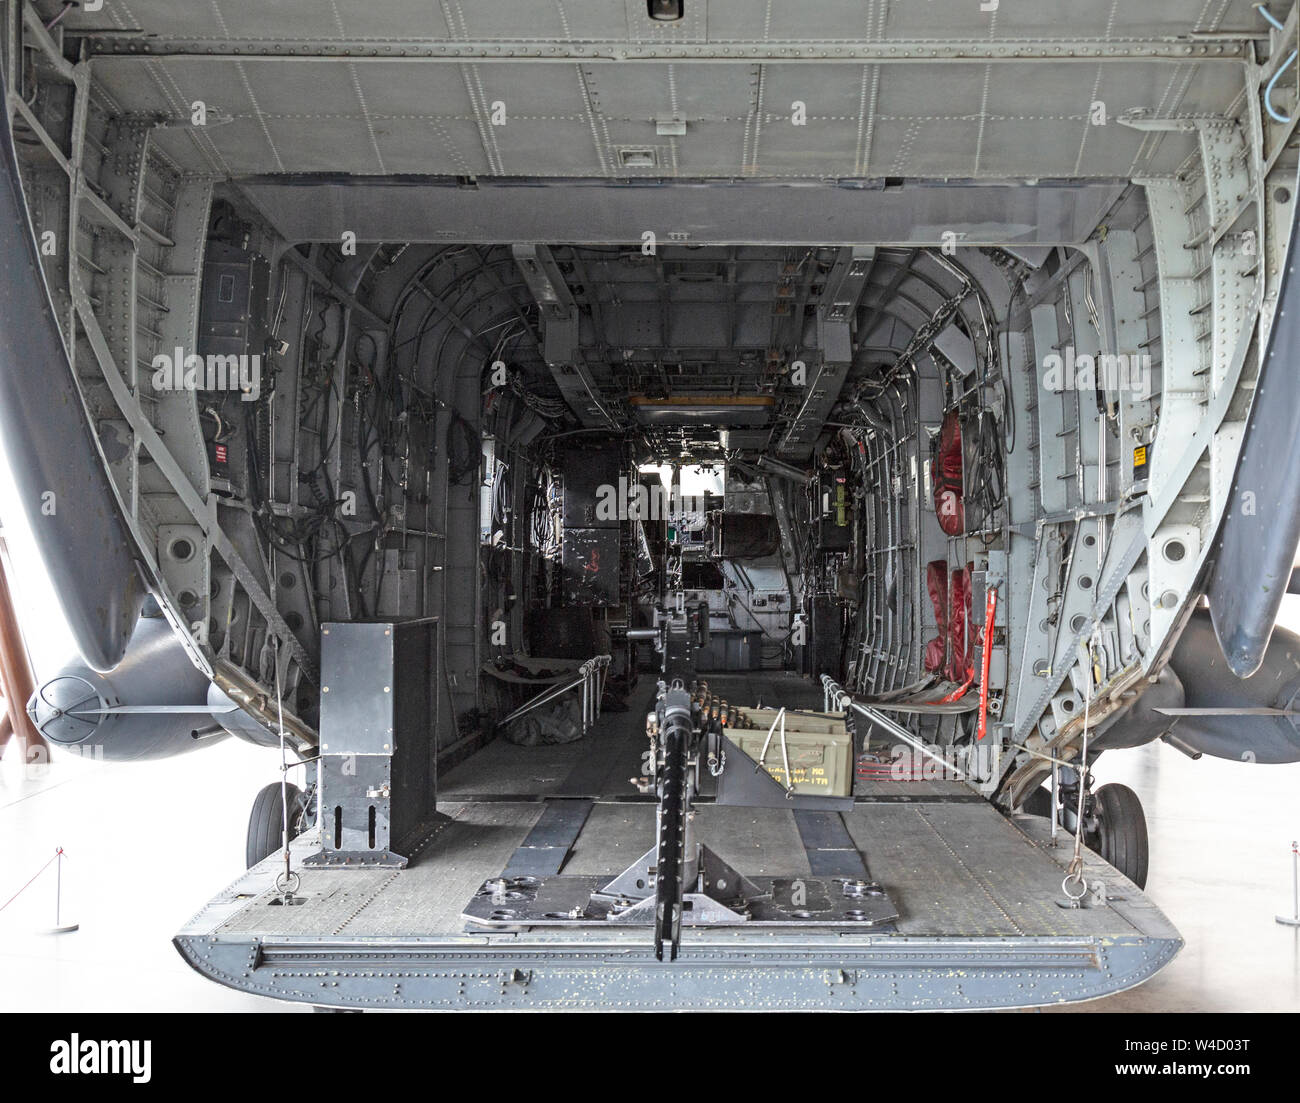 Interior view inside a Sikorsky MH-53M Pave Low IV American Military helicopter, on display at the RAF Museum at Cosford in England. serial 68-8284. Stock Photo